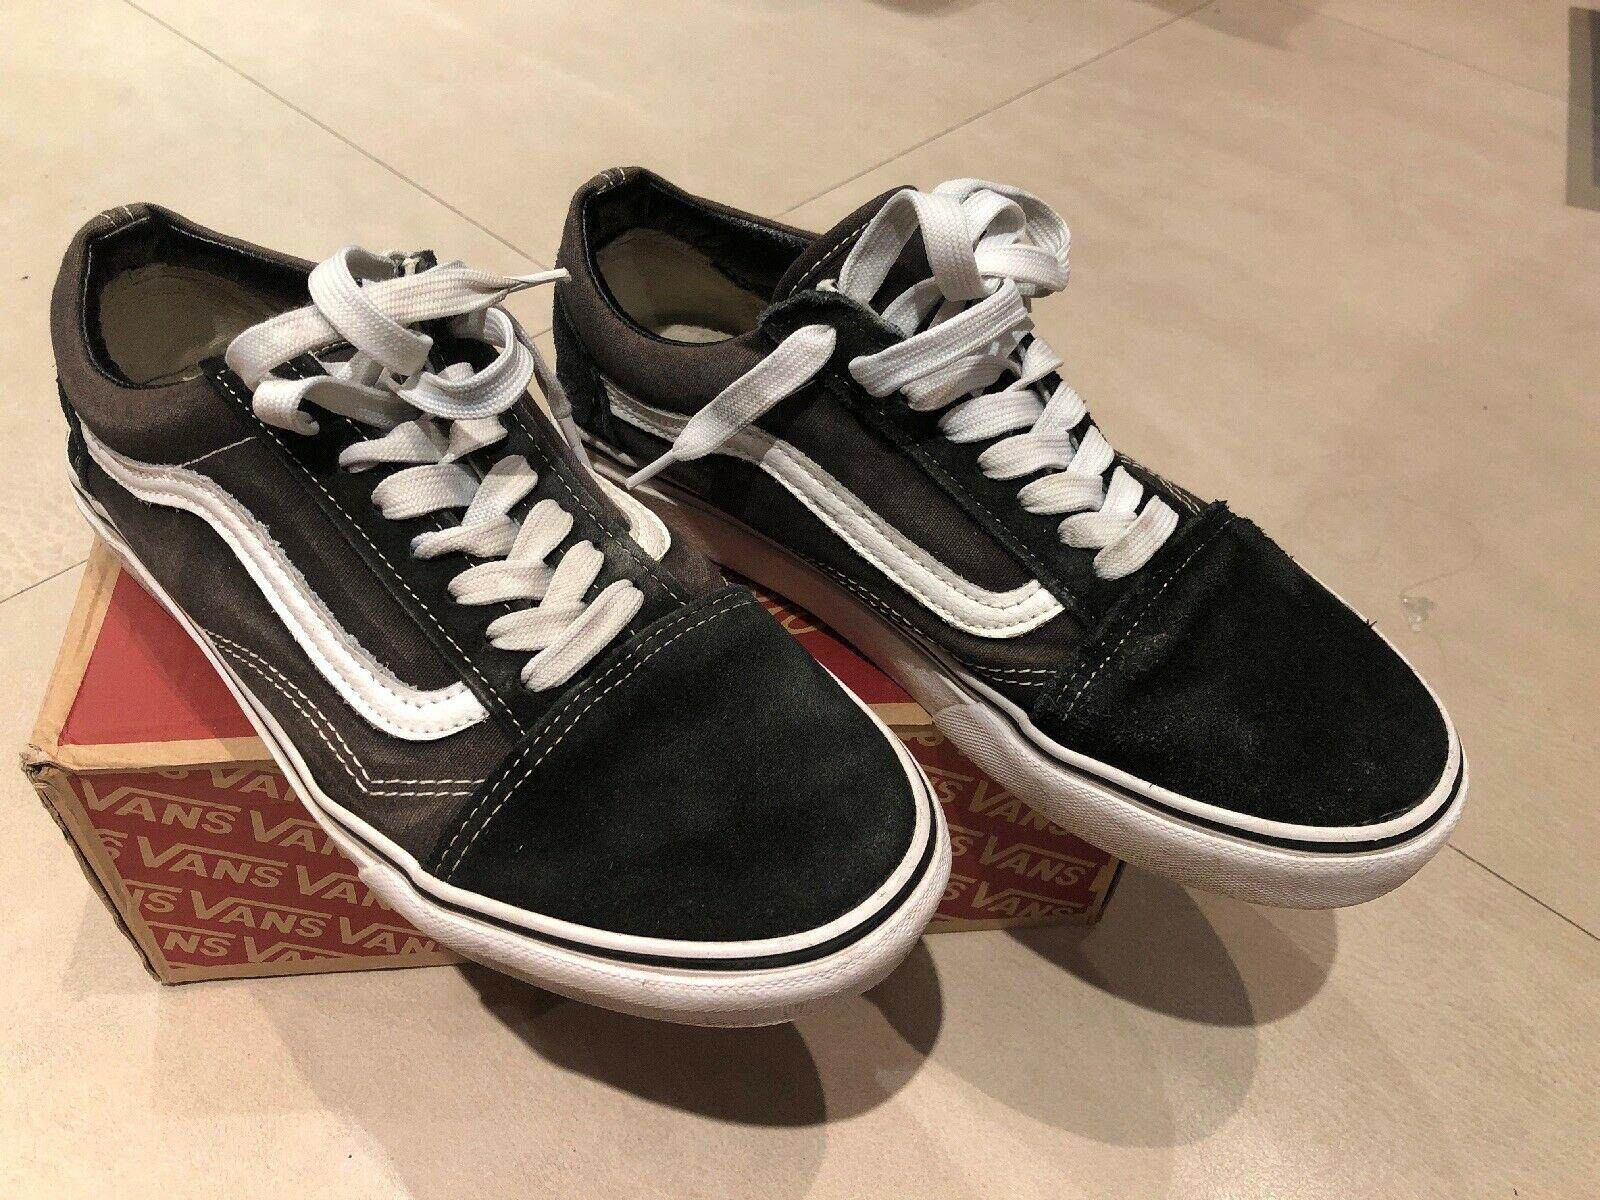 0c433425b50536 Vans Old Skool Suede and Canvas Trainers Size UK 8 Outdoor shoes